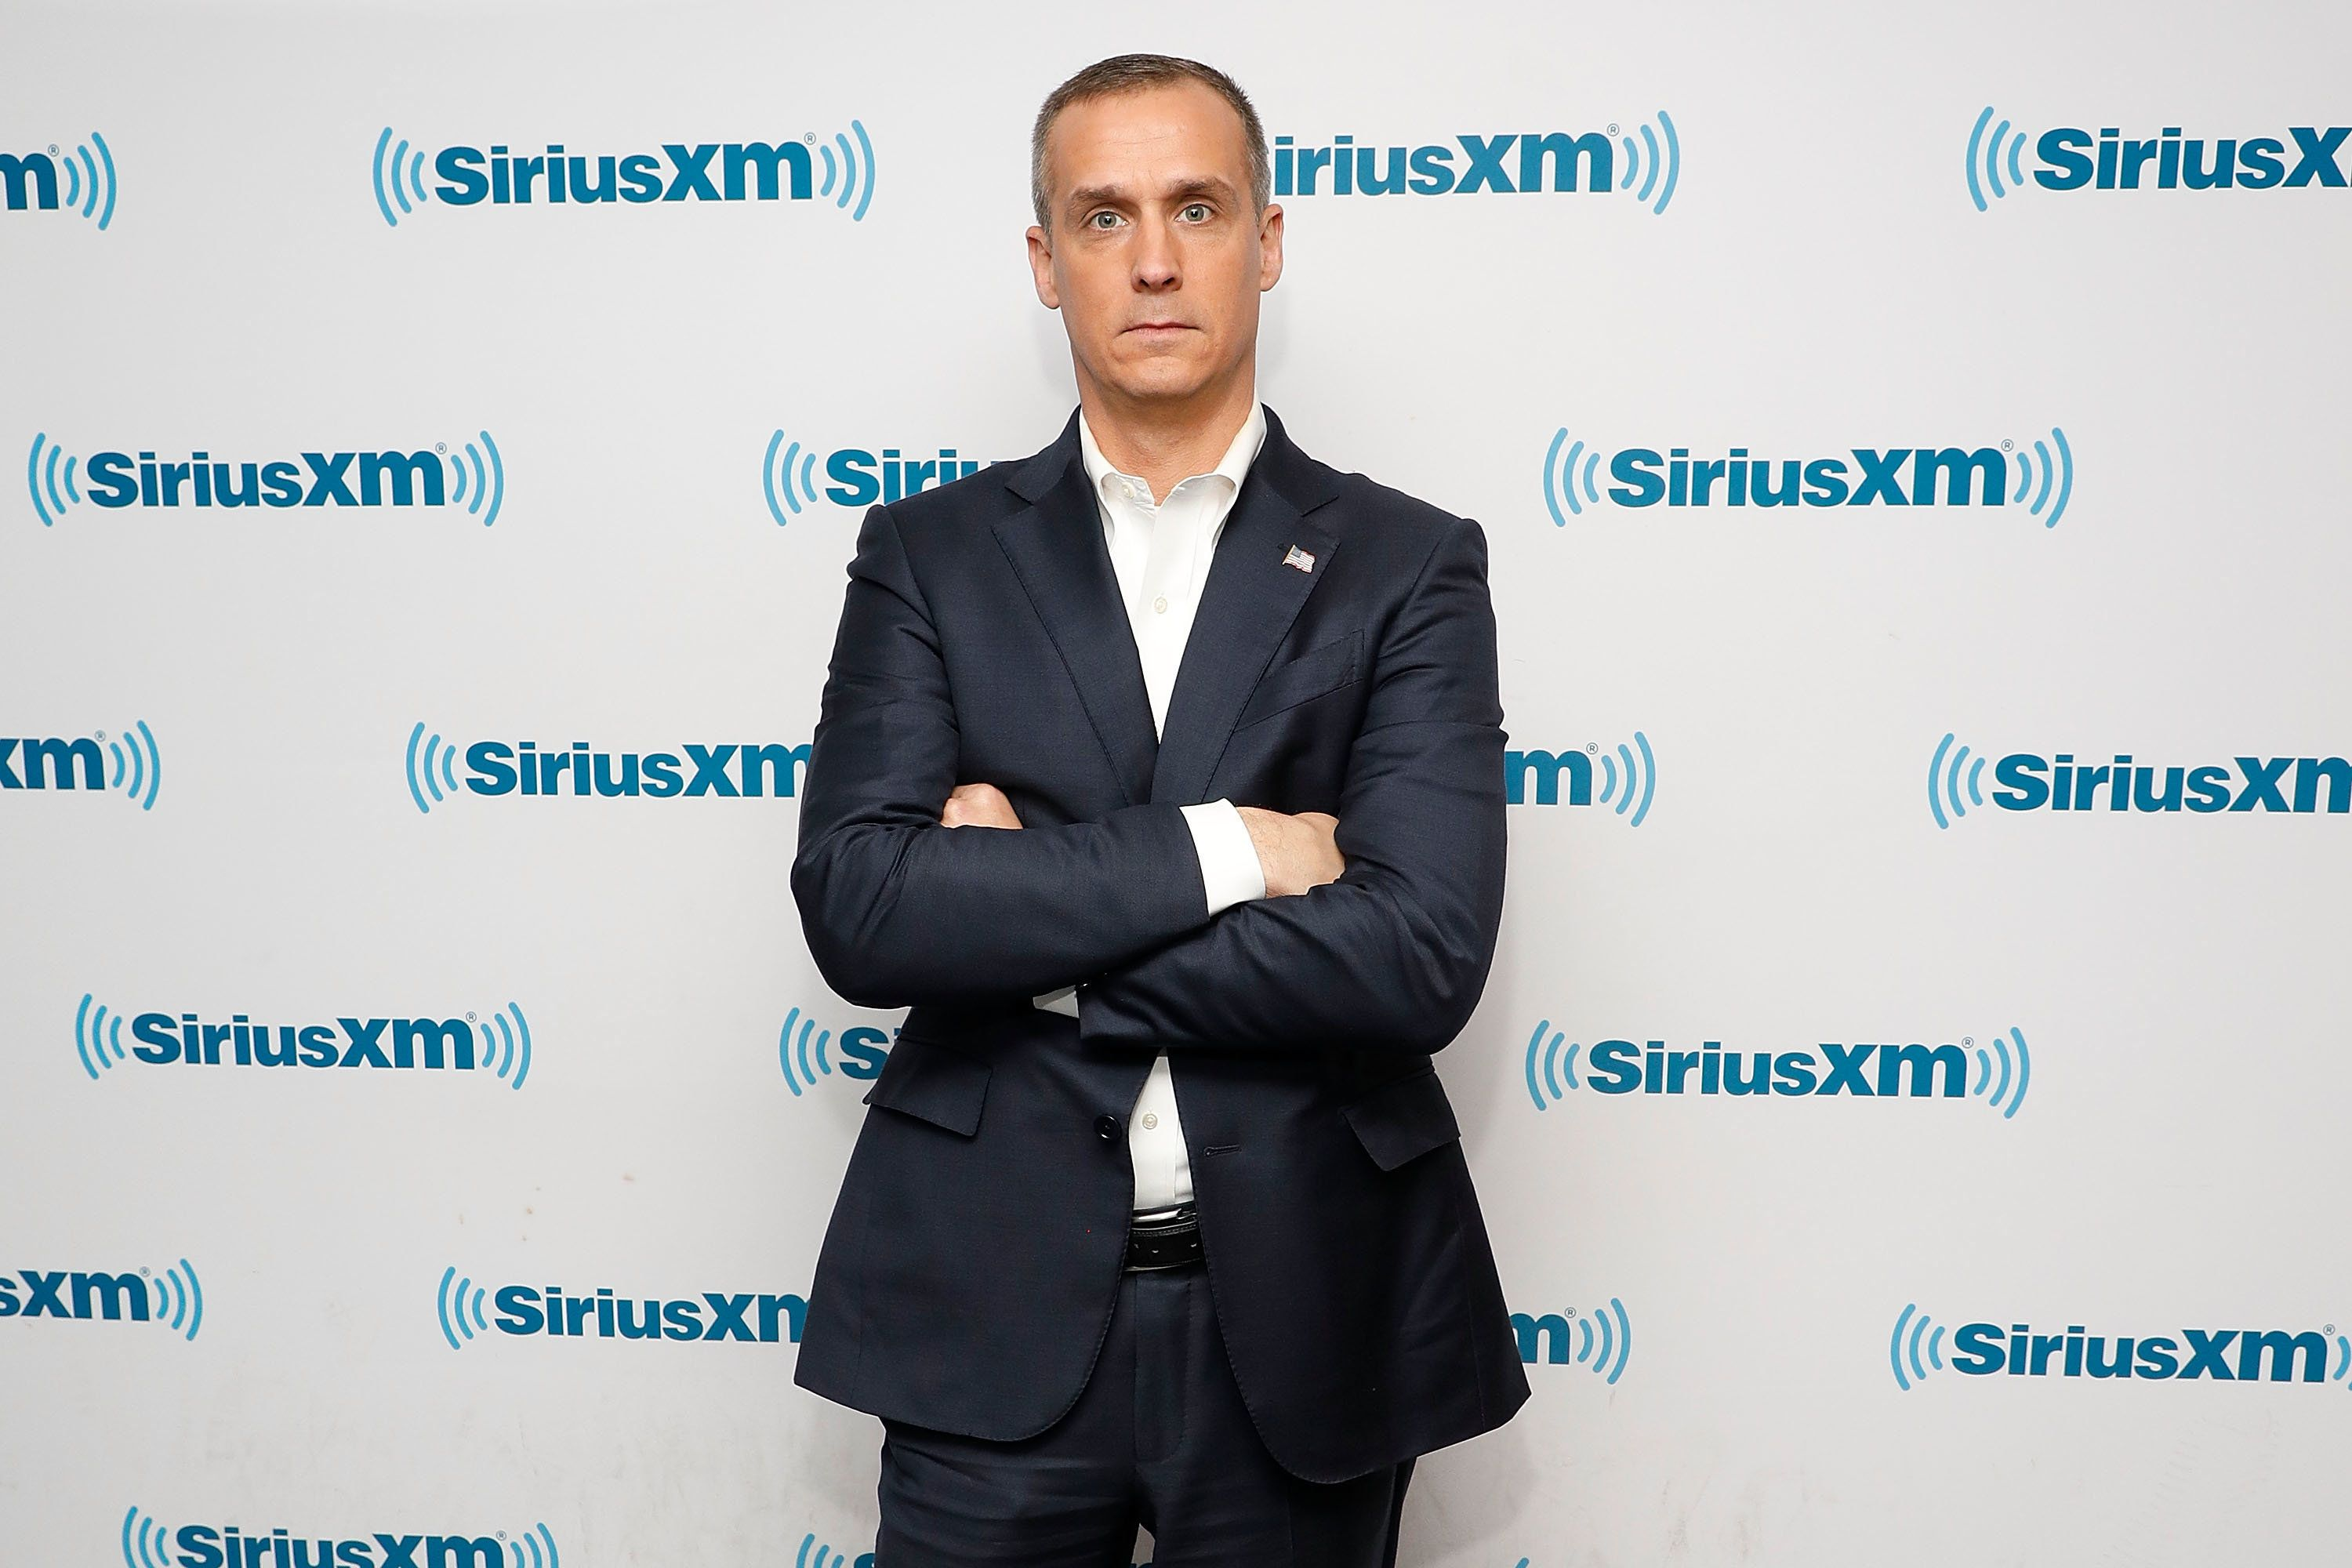 NEW YORK, NY - DECEMBER 06:  Corey Lewandowski, original campaign manager for Donald Trump for President, visits the SiriusXM studios to promote his book 'Let Trump Be Trump' on December 6, 2017 in New York City.  (Photo by Taylor Hill/Getty Images)